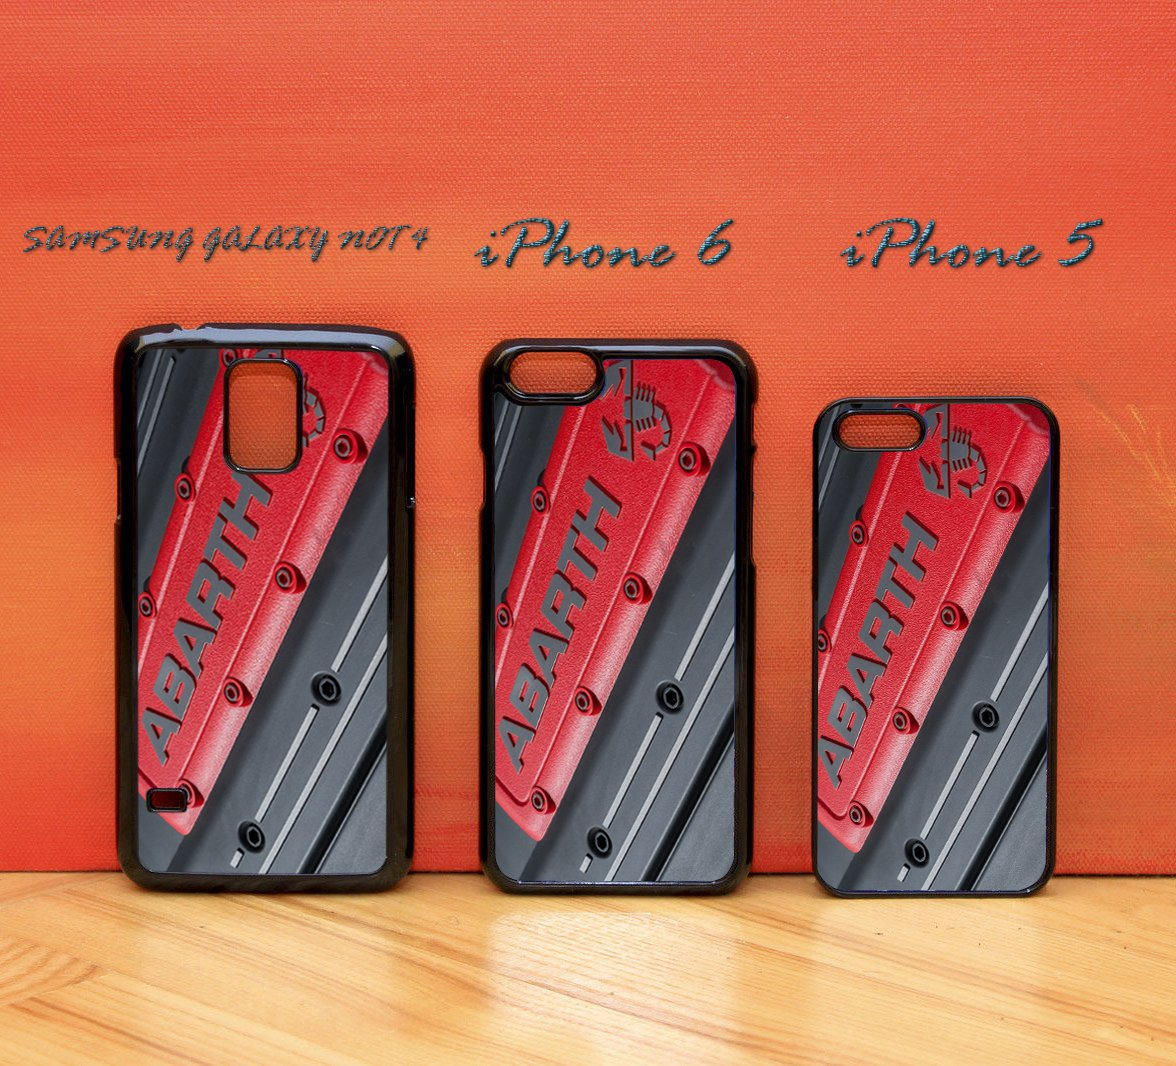 Engine Abarth Super Sport iphone 6 case, iPhone 6 cover, iPhone 6 accsesories